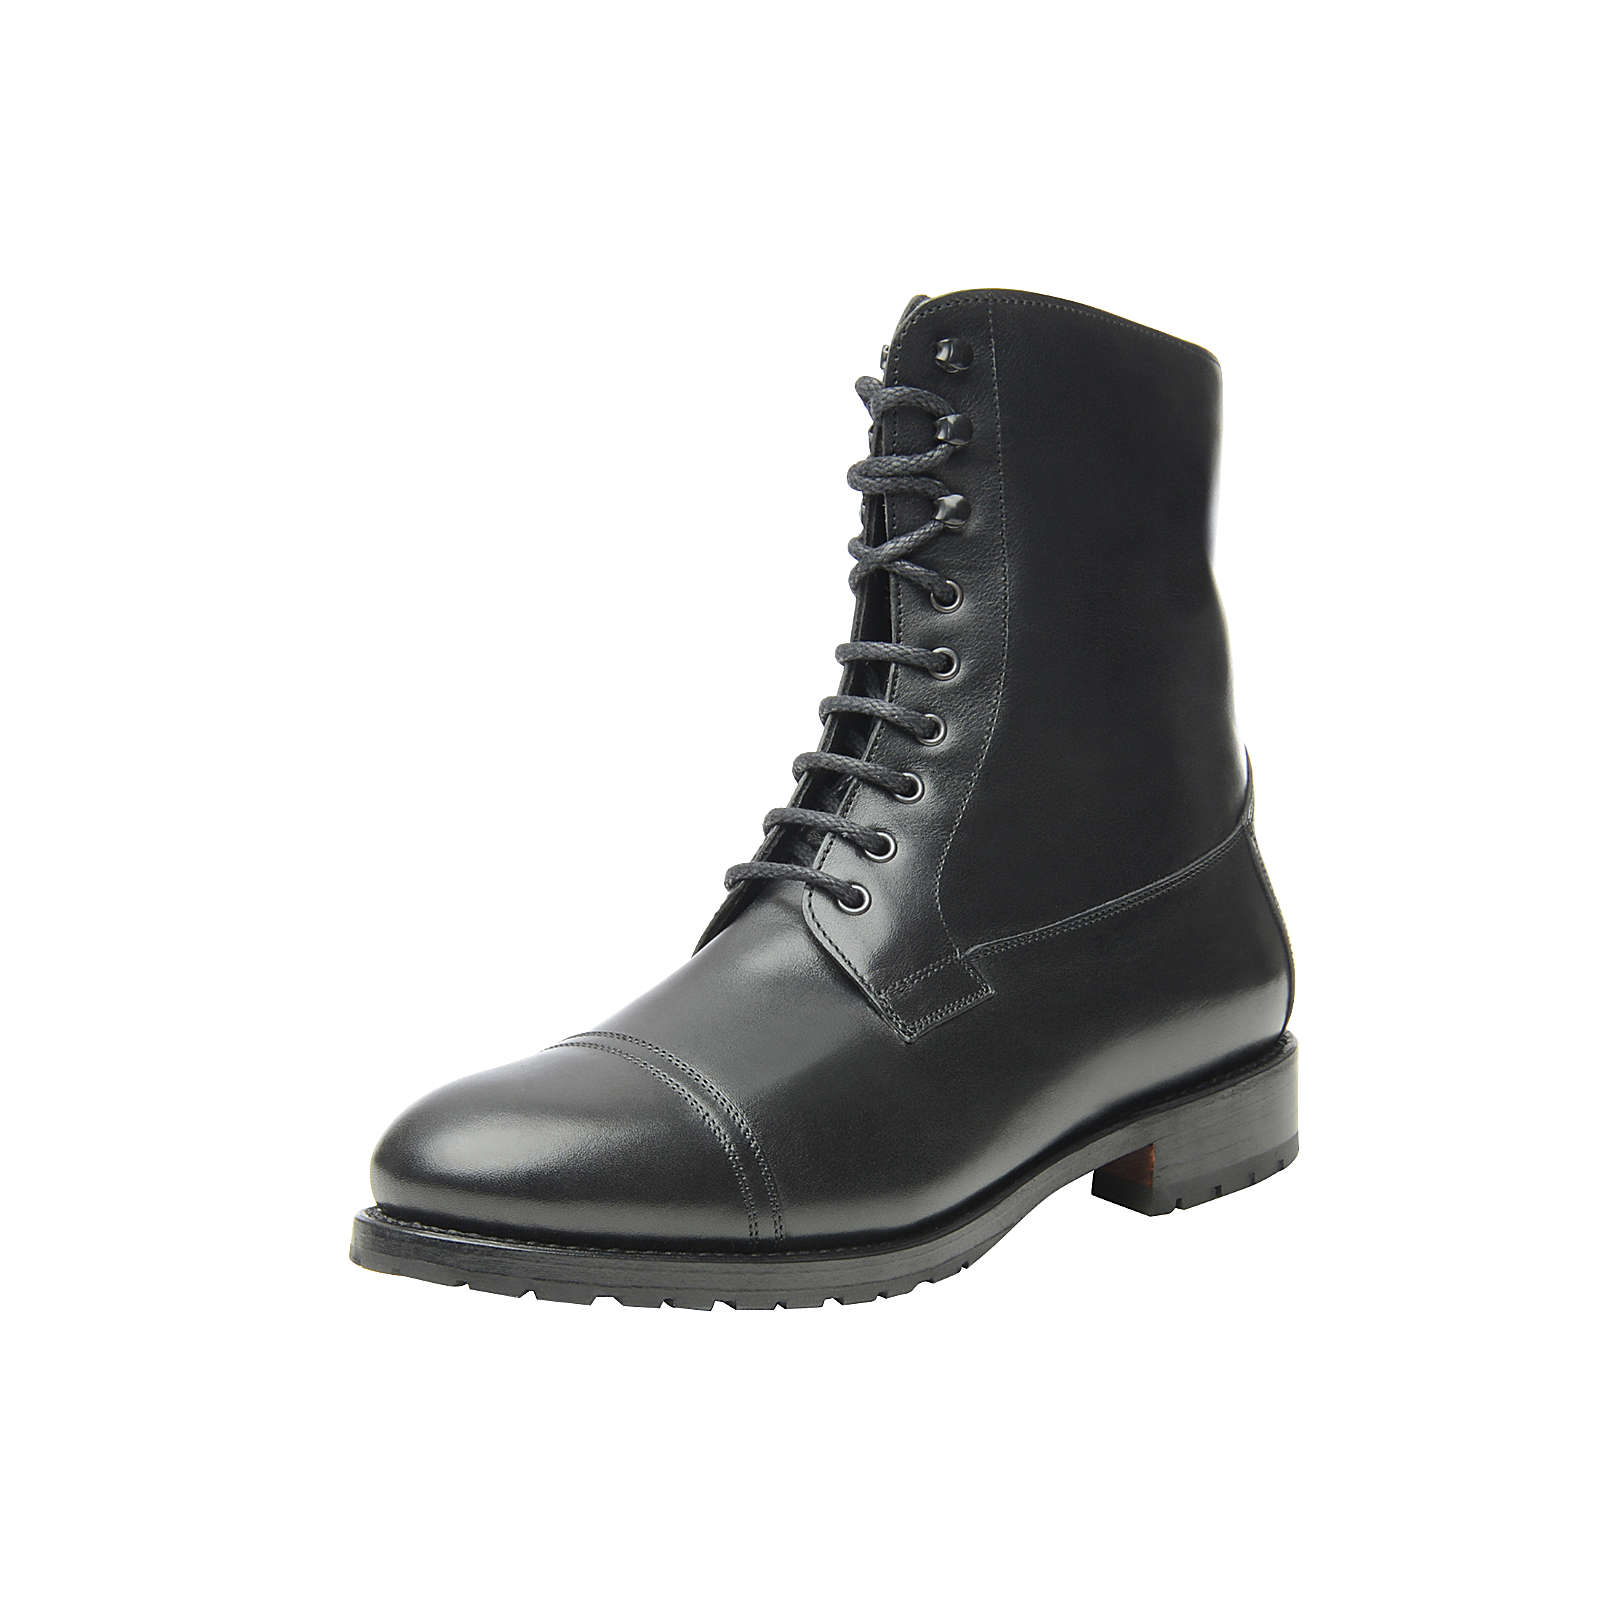 SHOEPASSION No. 271 Stiefel schwarz Damen Gr. 37